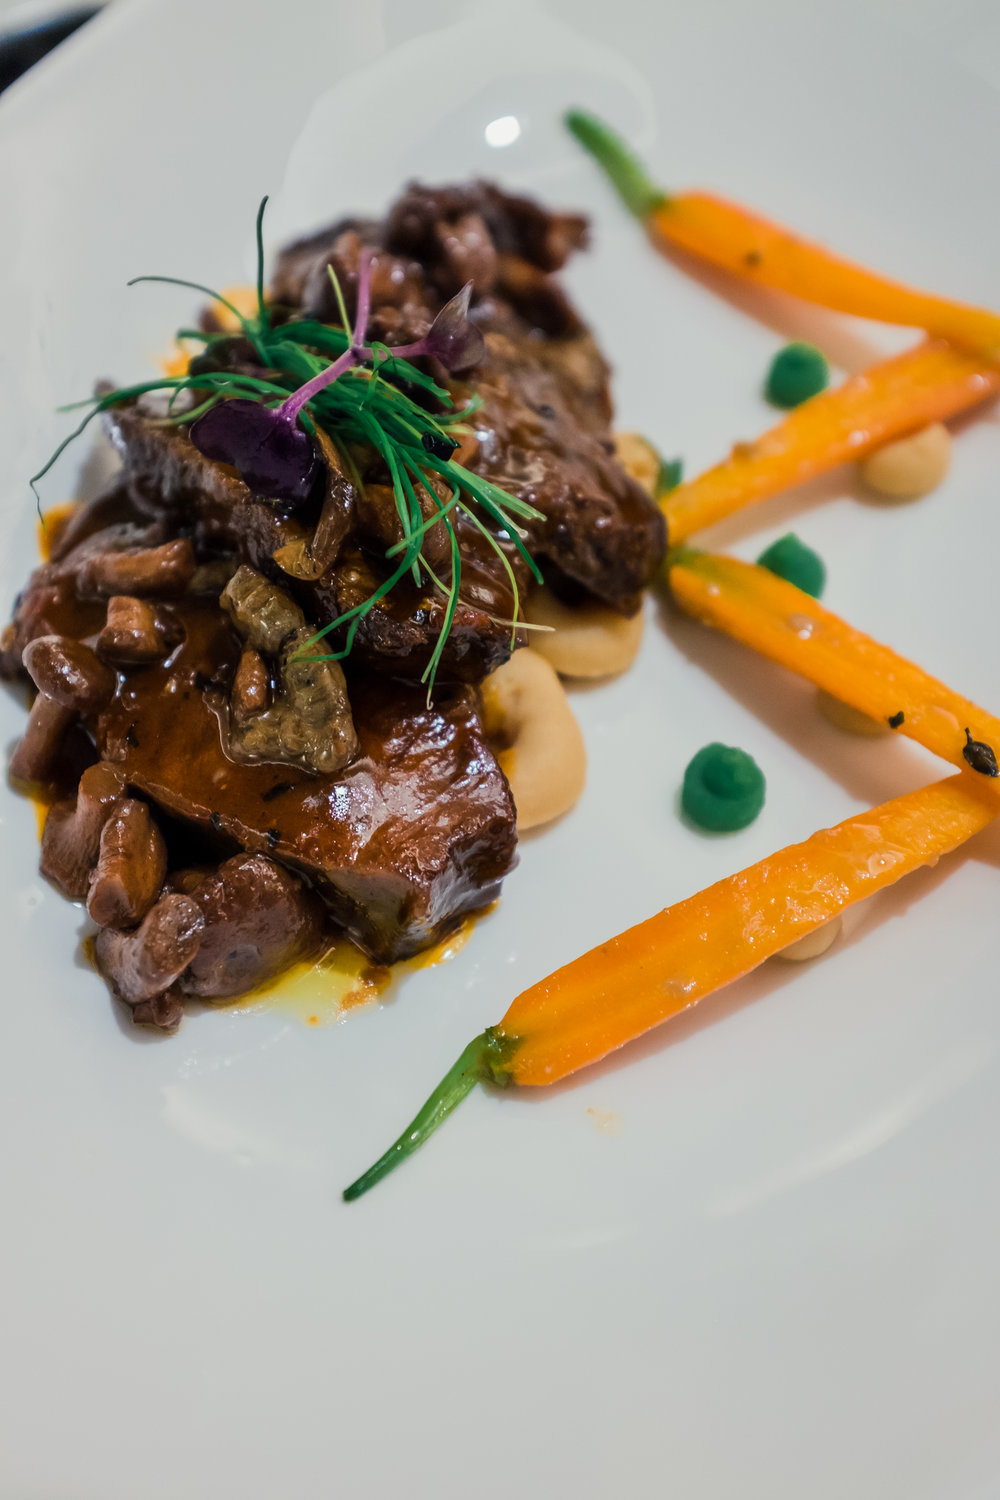 Slow Braised Wagyu Beef Cheek With Creamy Mash, Chanterelle Mushrooms and Veggies